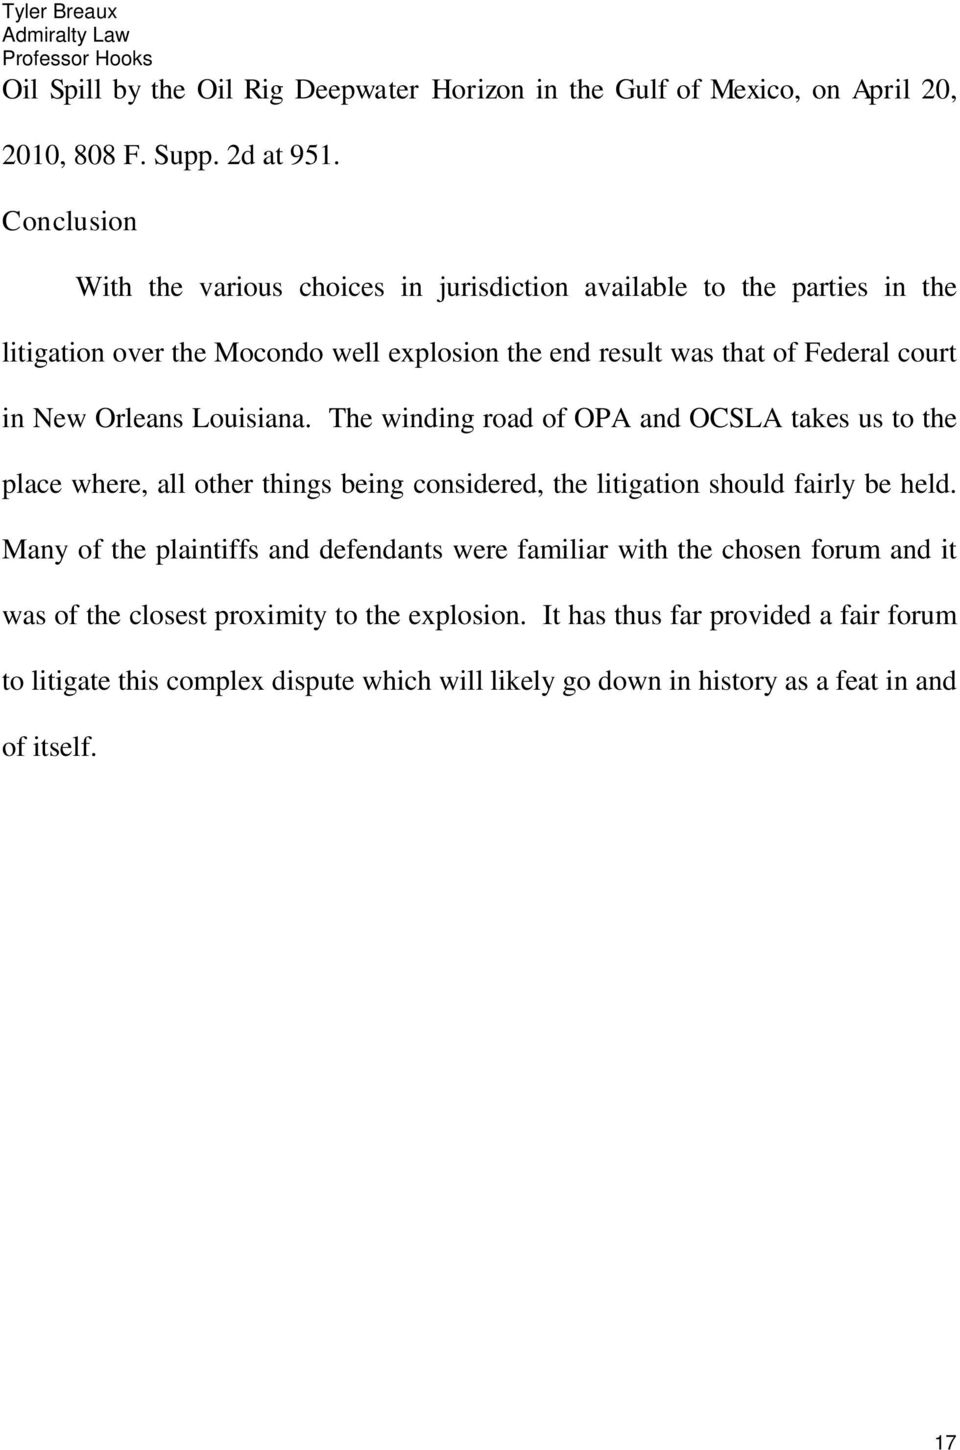 Orleans Louisiana. The winding road of OPA and OCSLA takes us to the place where, all other things being considered, the litigation should fairly be held.